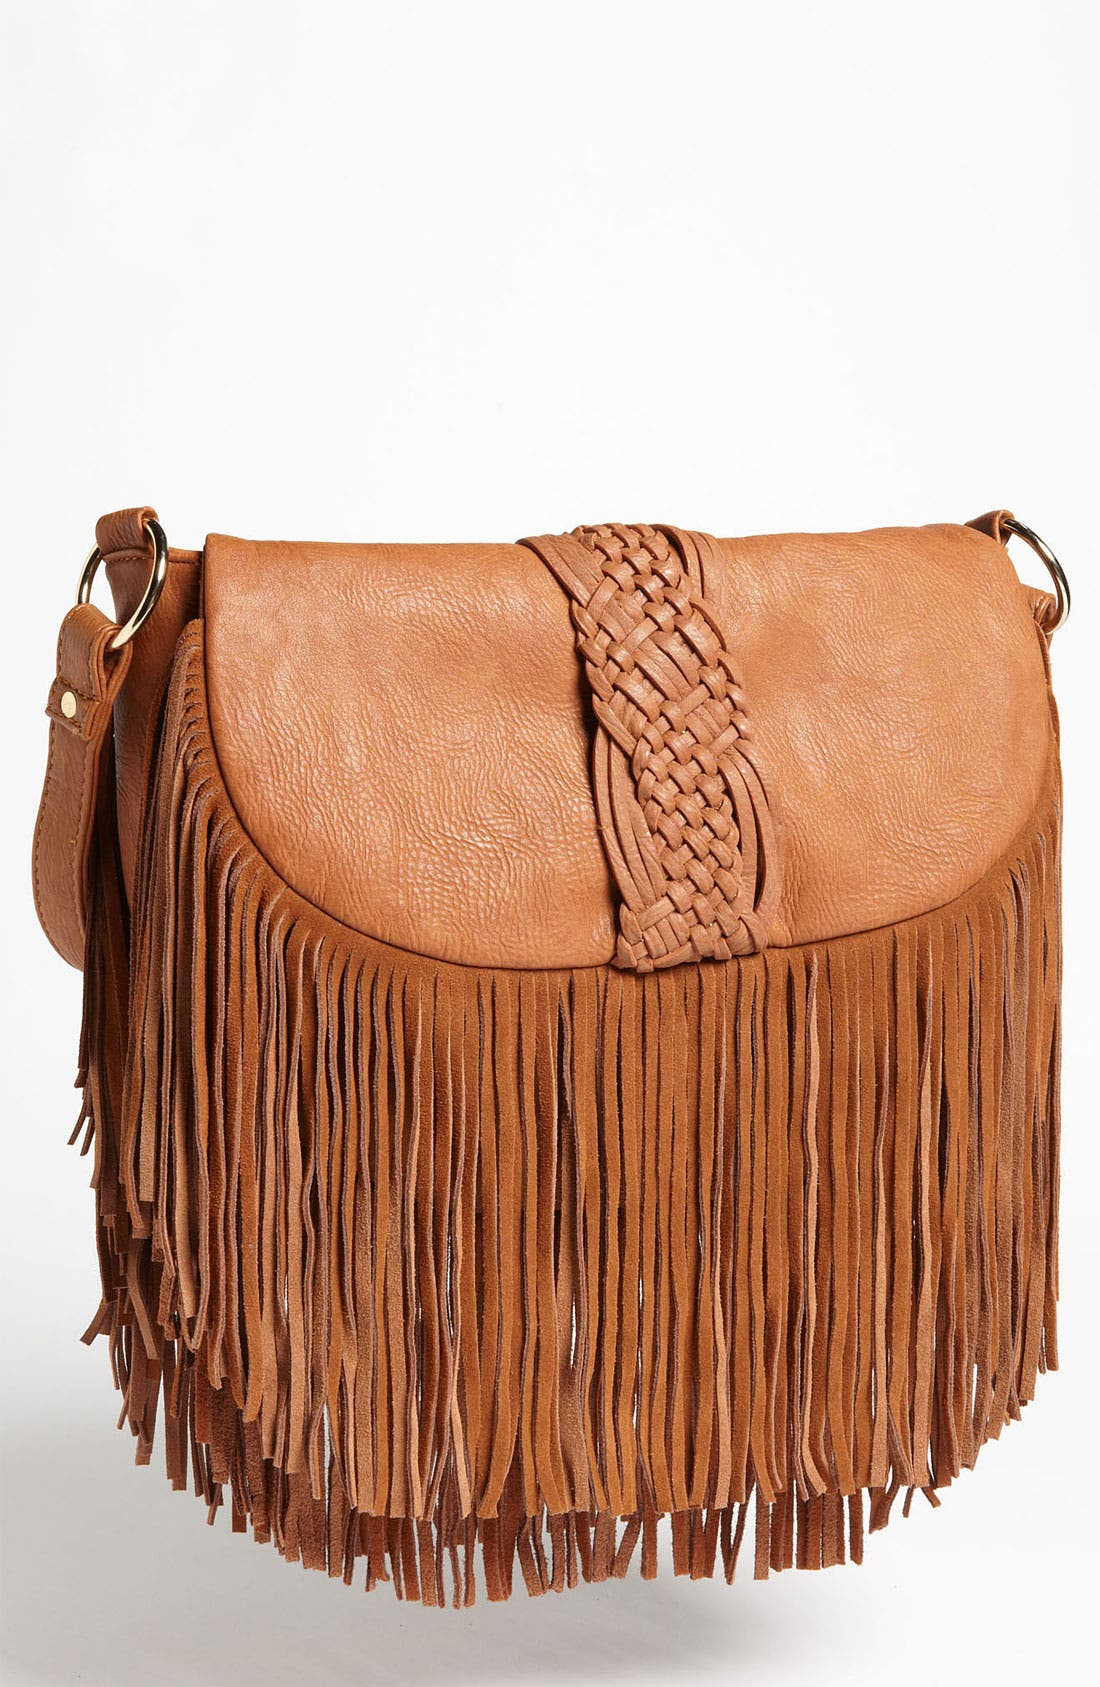 Alternate Image 1 Selected - Street Level Woven Fringe Crossbody Bag